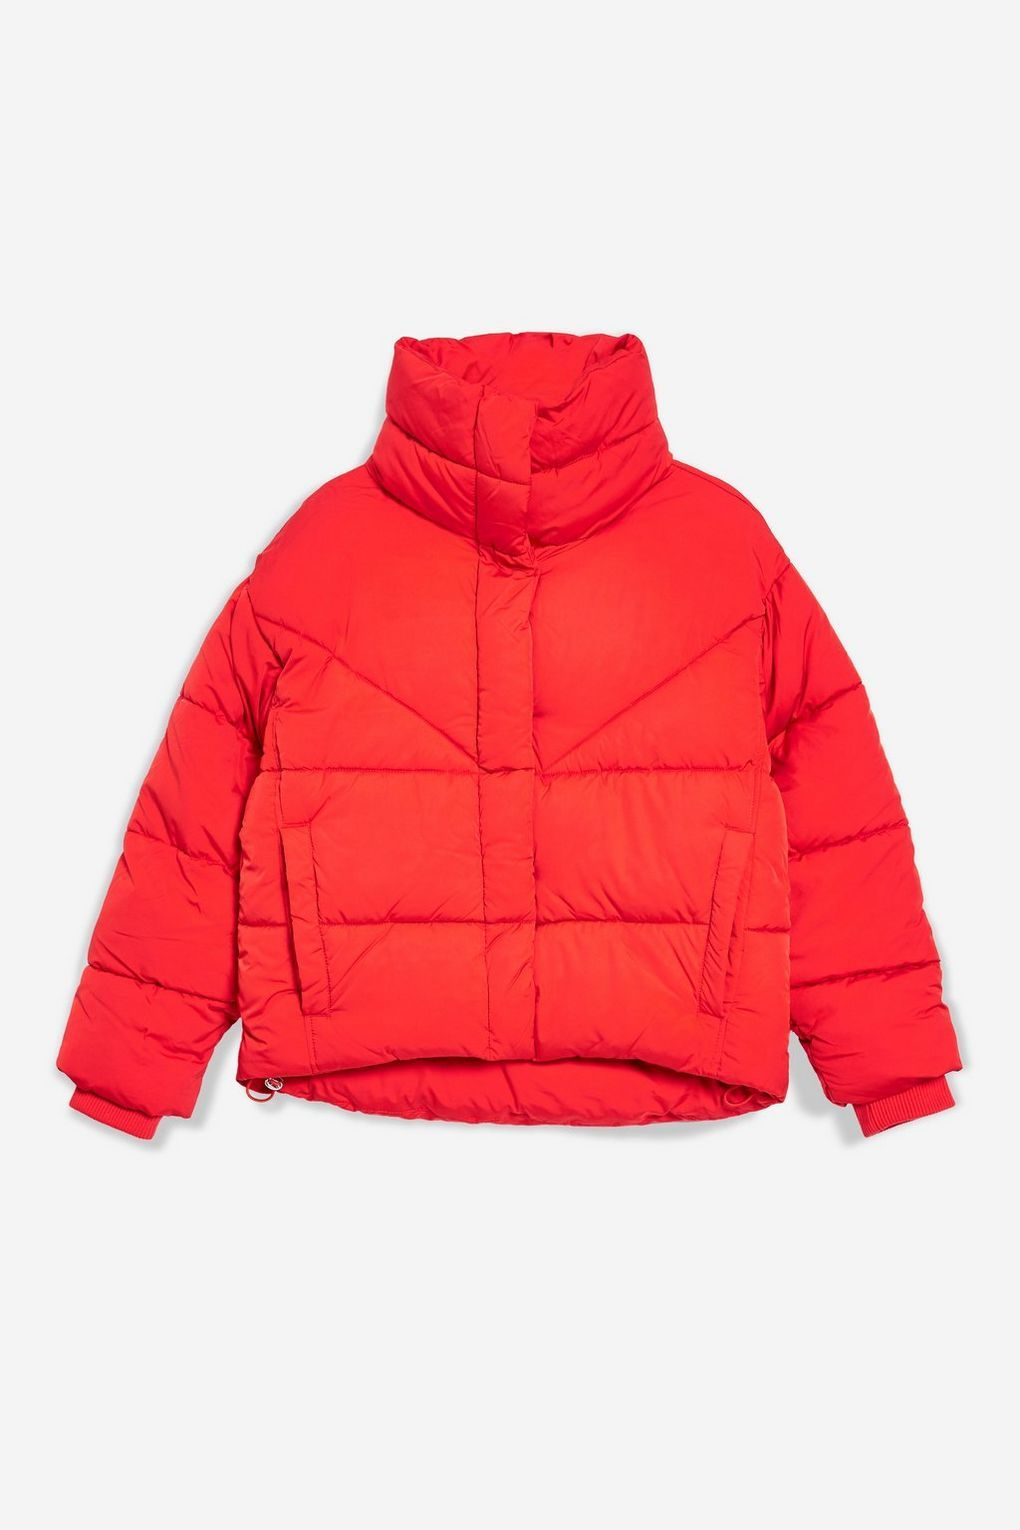 Red Wrap Puffer Jacket Jackets Coats Clothing Topshop Usa Jackets Puffer Jackets Winter Jackets [ 1530 x 1020 Pixel ]